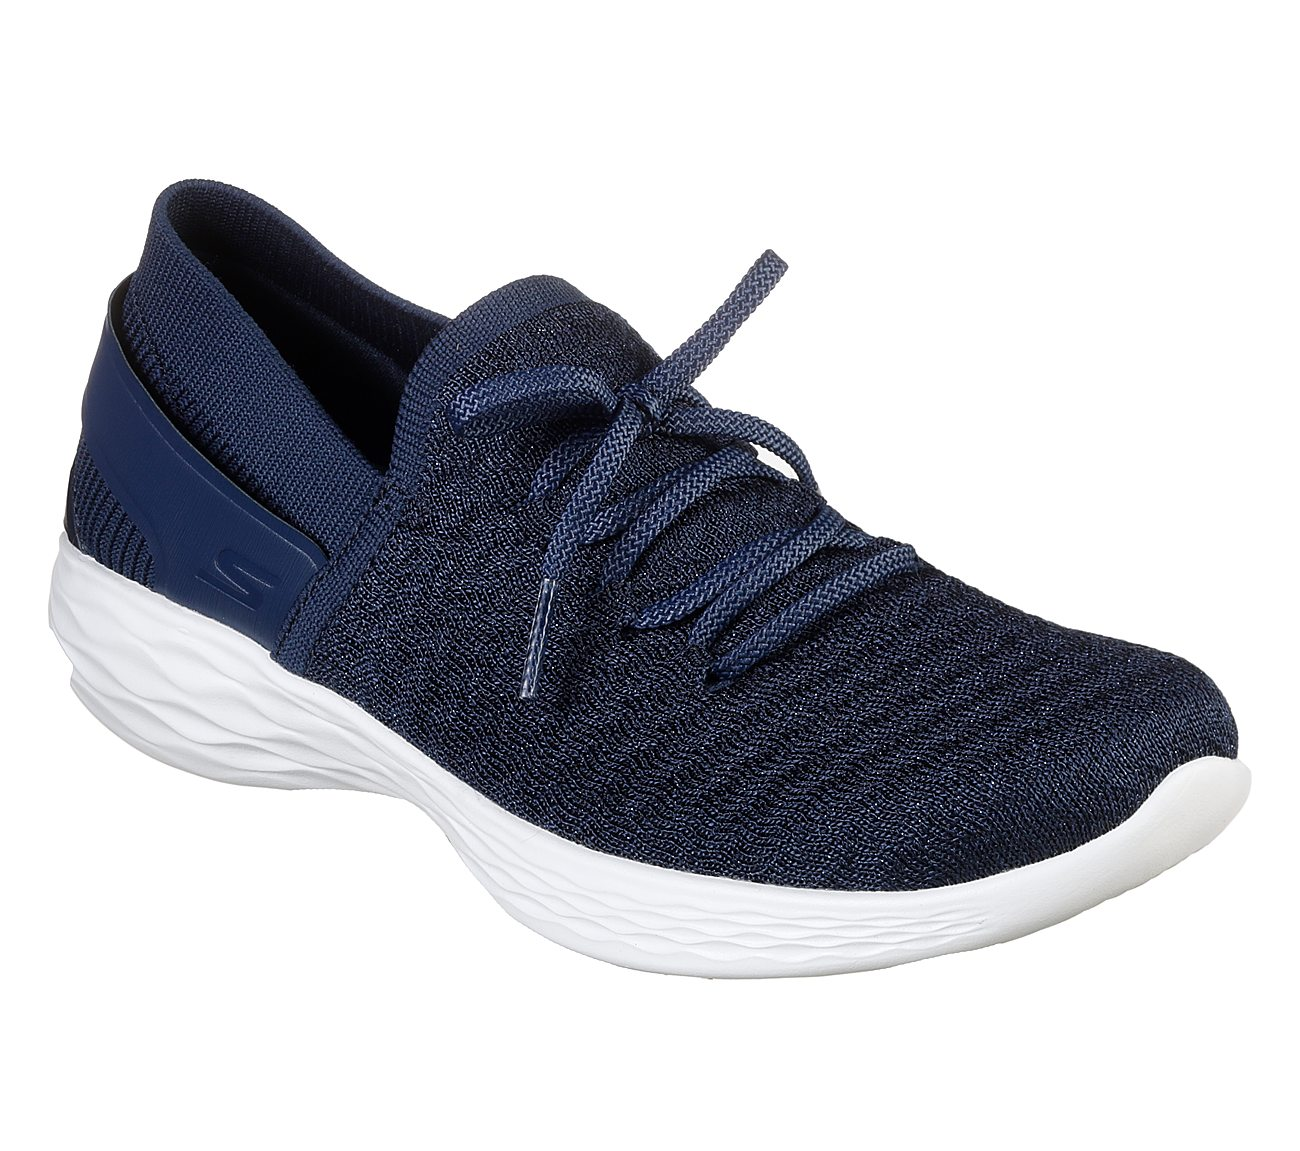 3e6353610bb2 Buy SKECHERS YOU - Beginning Lifestyle Shoes only  75.00